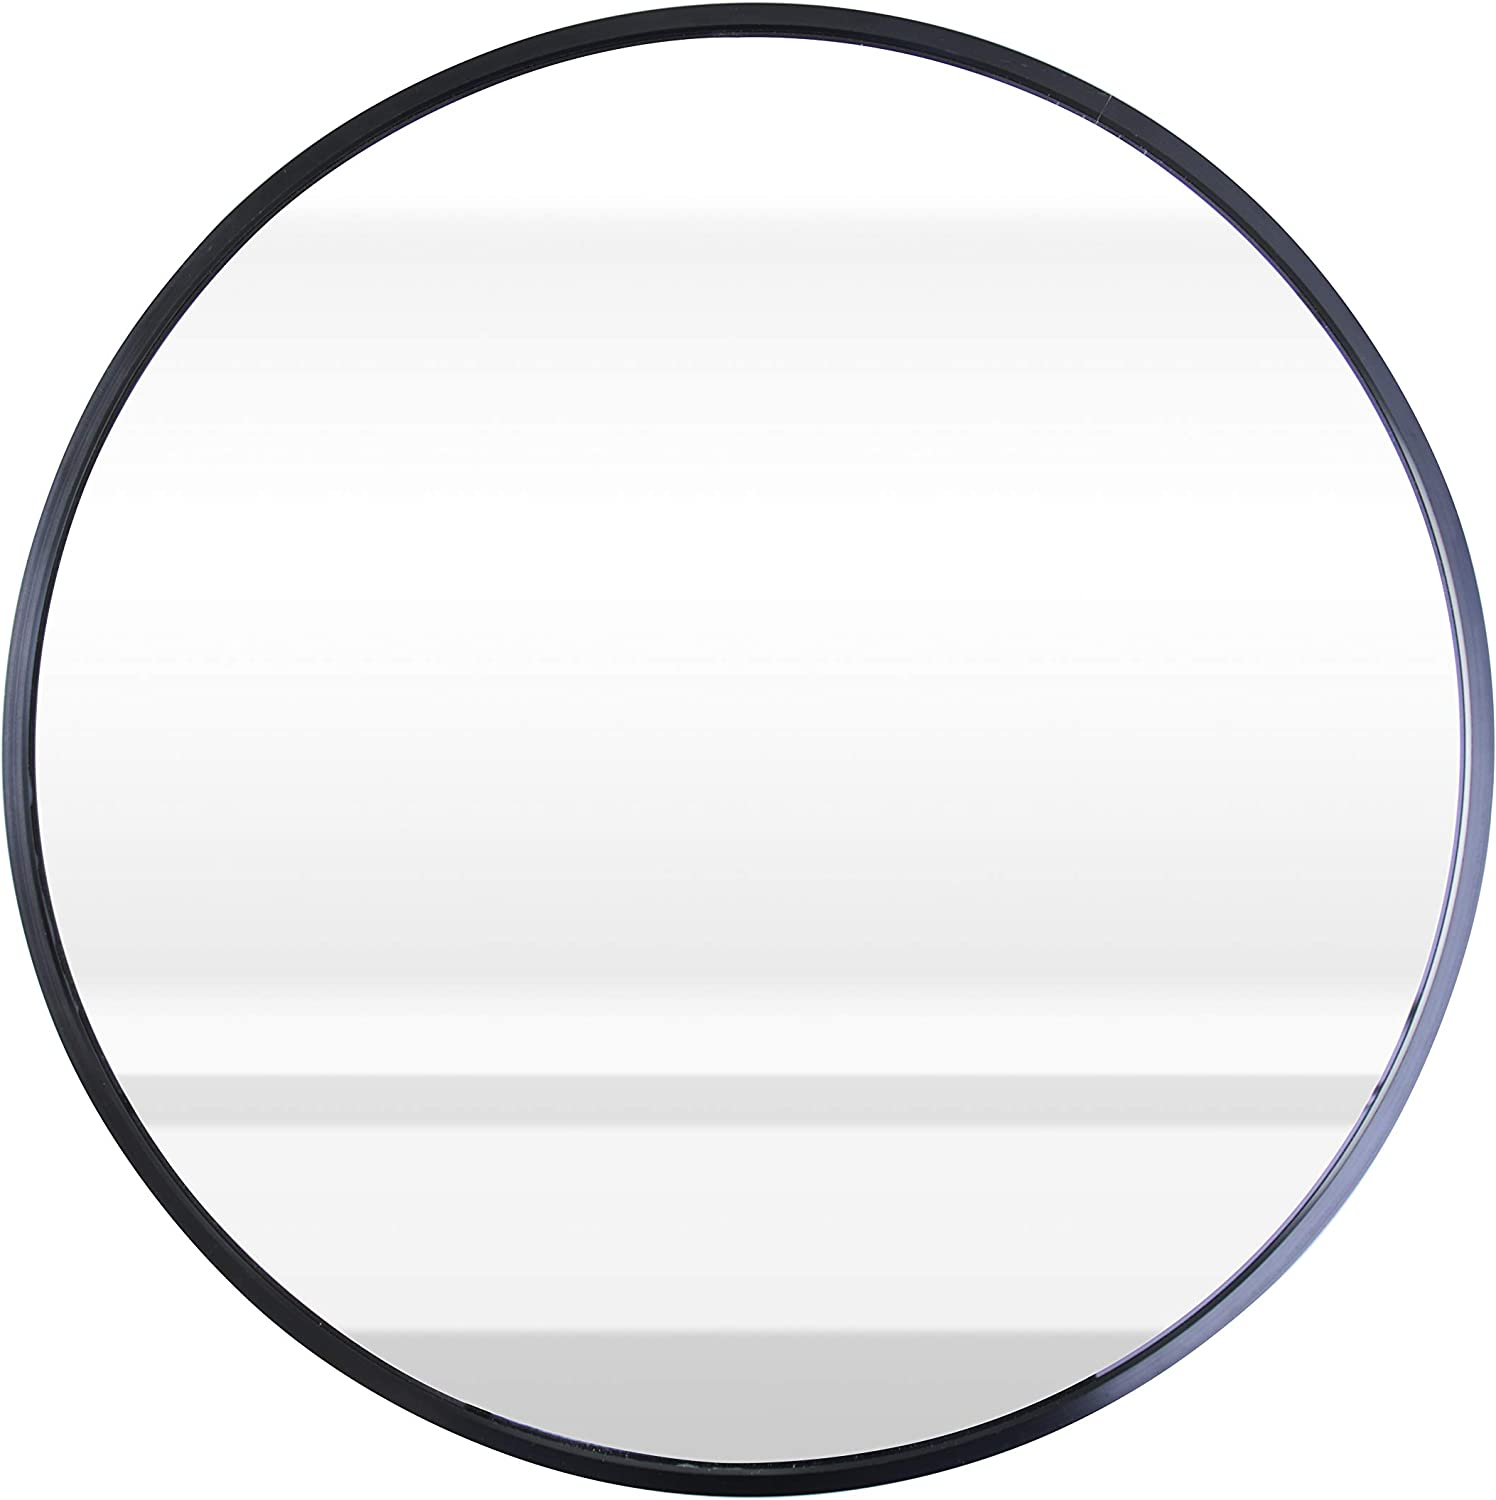 """ABZQH Round Mirror for Wall, 19.7"""" Black Circle Mirror Large Wall-Mounted Aluminum Alloy Frame Decorative Mirror for Bathroom Vanity Entryways Wall Decor"""